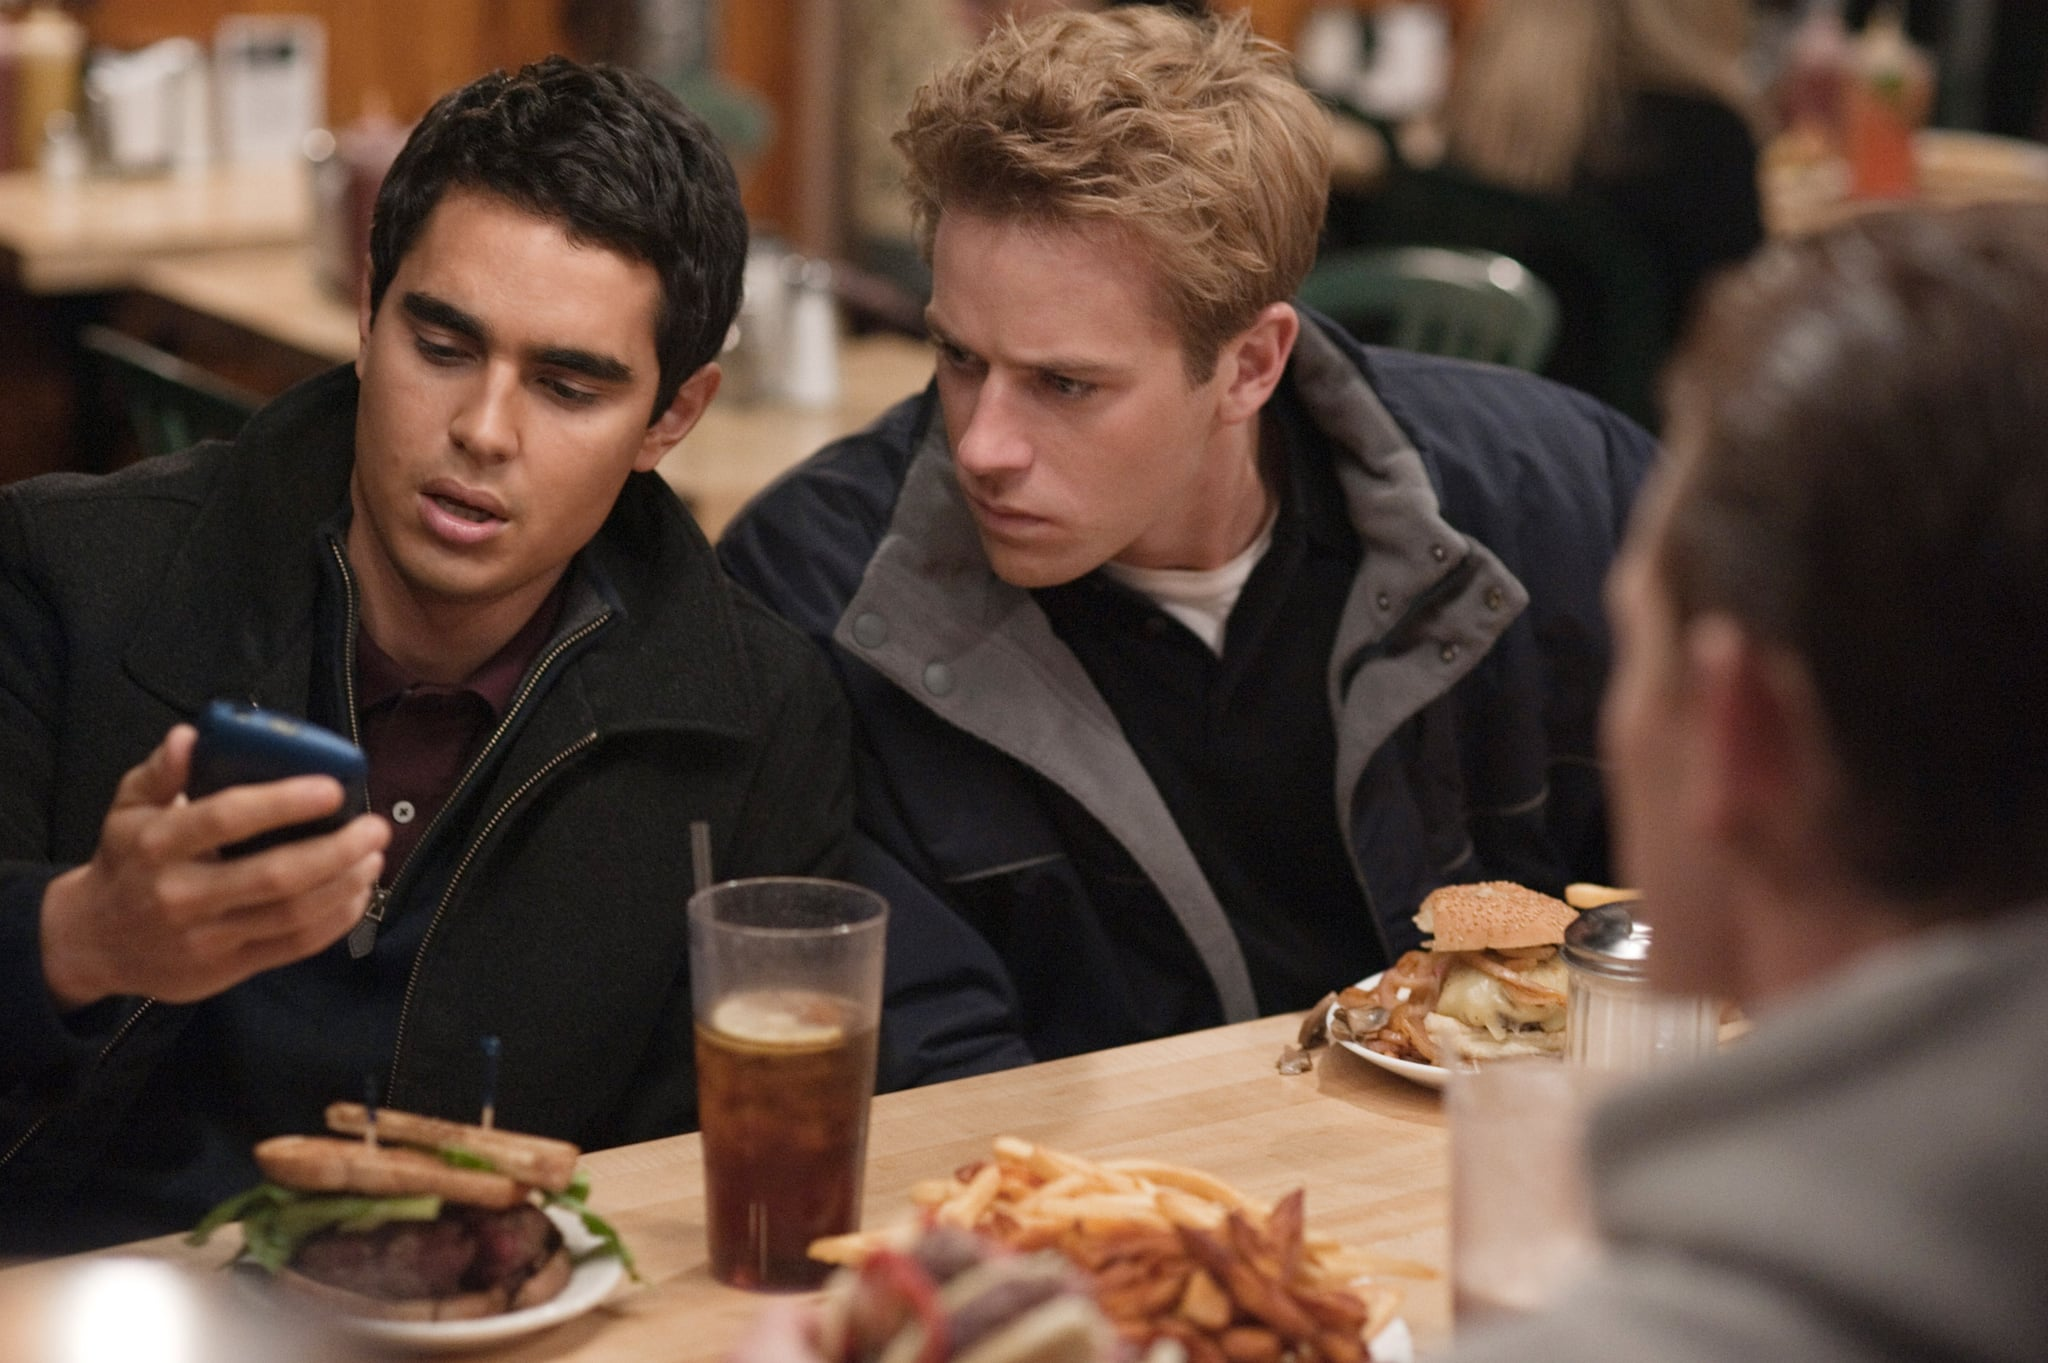 THE SOCIAL NETWORK, from left: Max Minghella, Armie Hammer, 2010. ph: Merrick Morton/Columbia Pictures/Courtesy Everett Collection